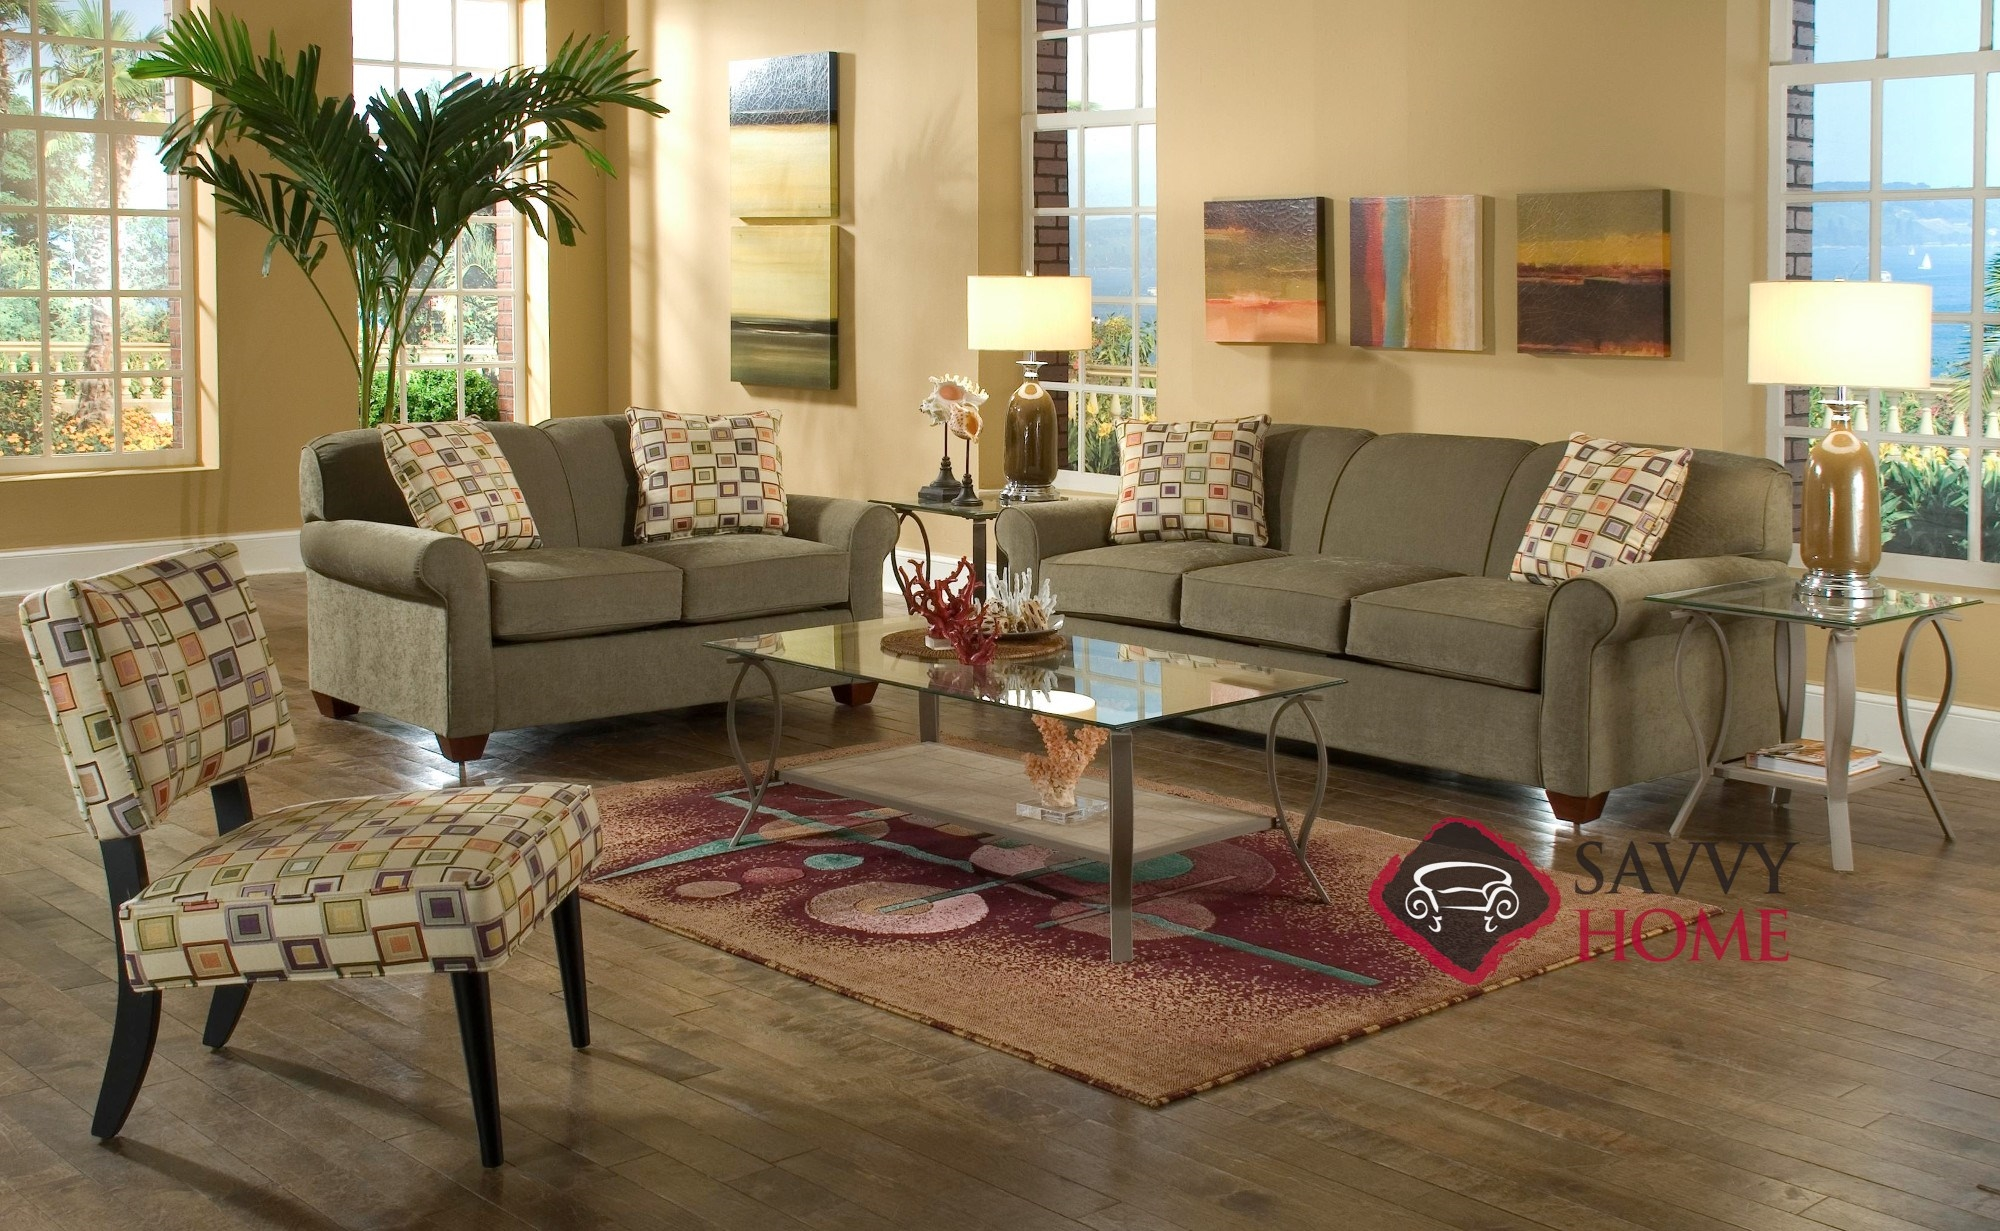 Affordable Furniture Calgary Calgary Fabric Stationary Sofa By Savvy Is Fully